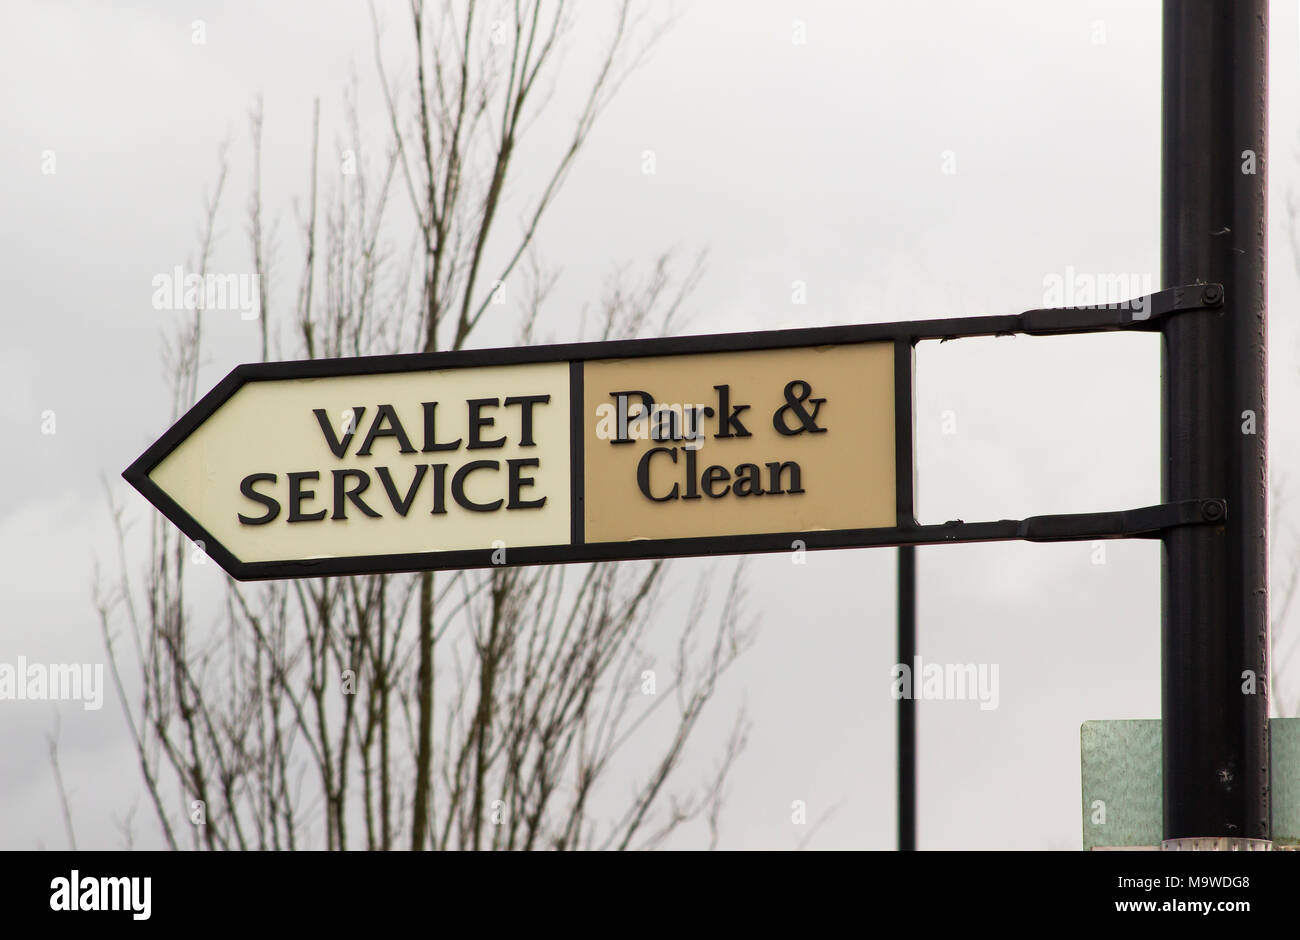 A sign pointing the way to the Valet Service, one of the many businesses at the prestigious Kildare Village retail outlet in county Kildare Ireland - Stock Image